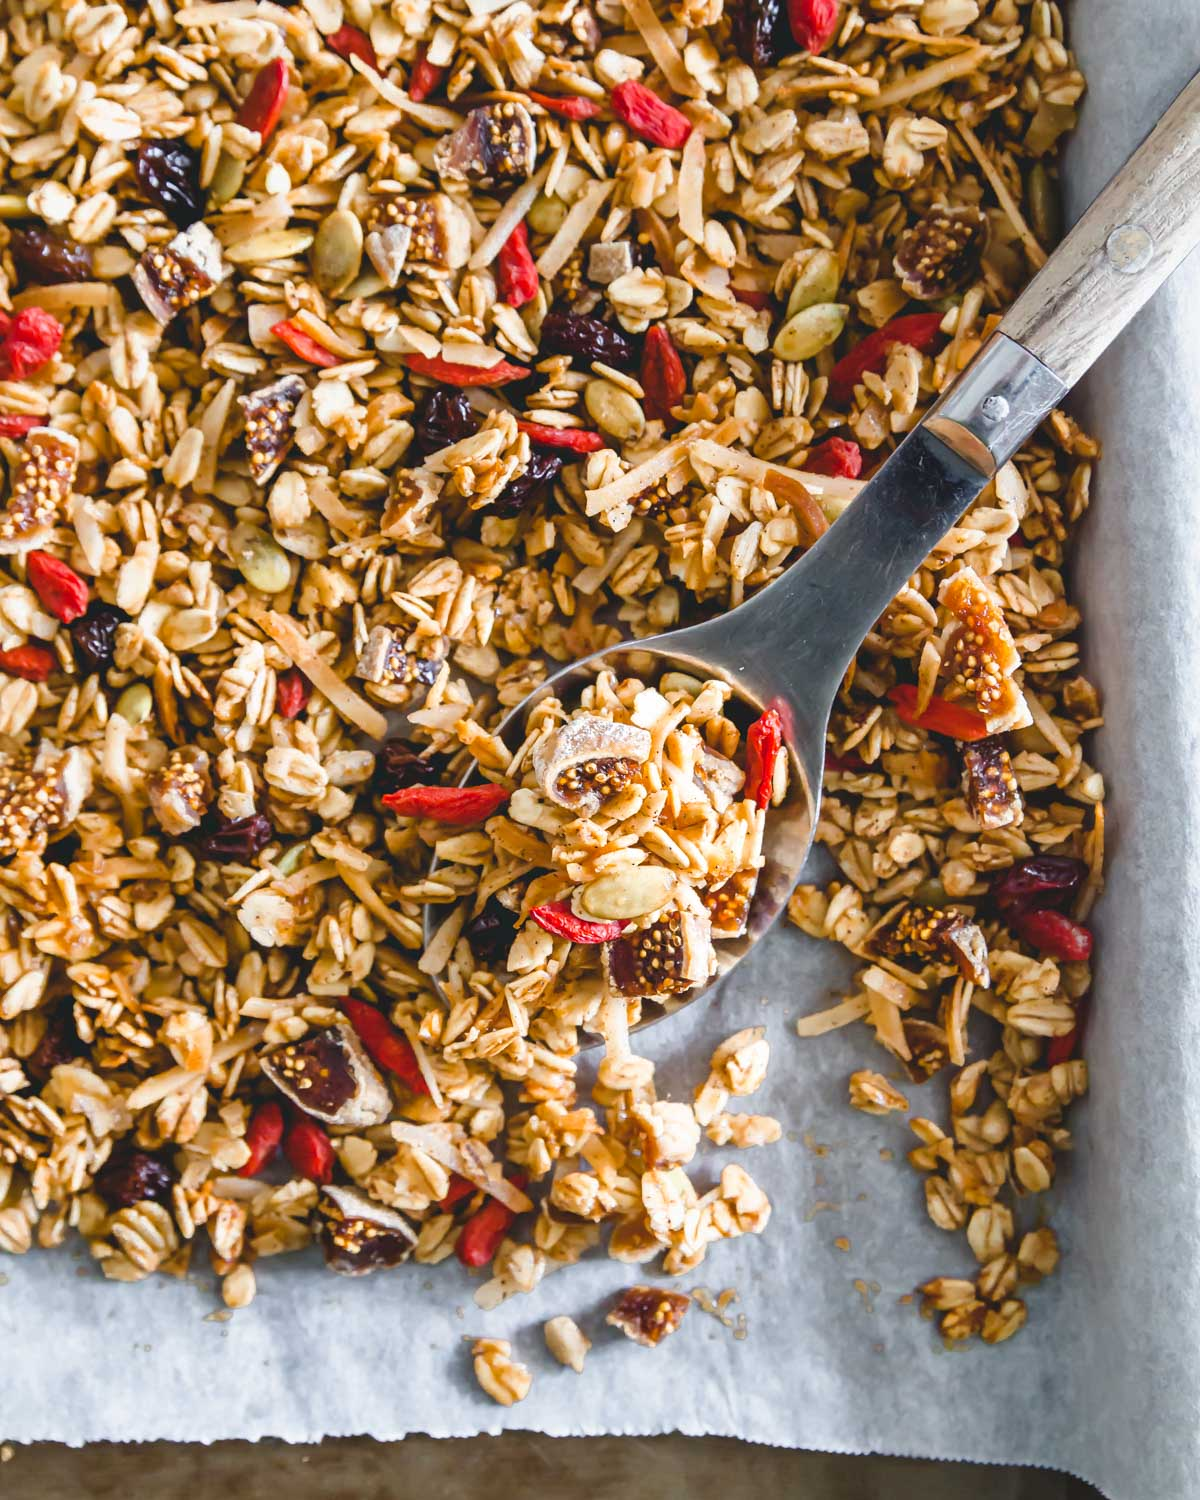 Gluten-free nut-free granola recipe baked with simple ingredients ready to be stored.